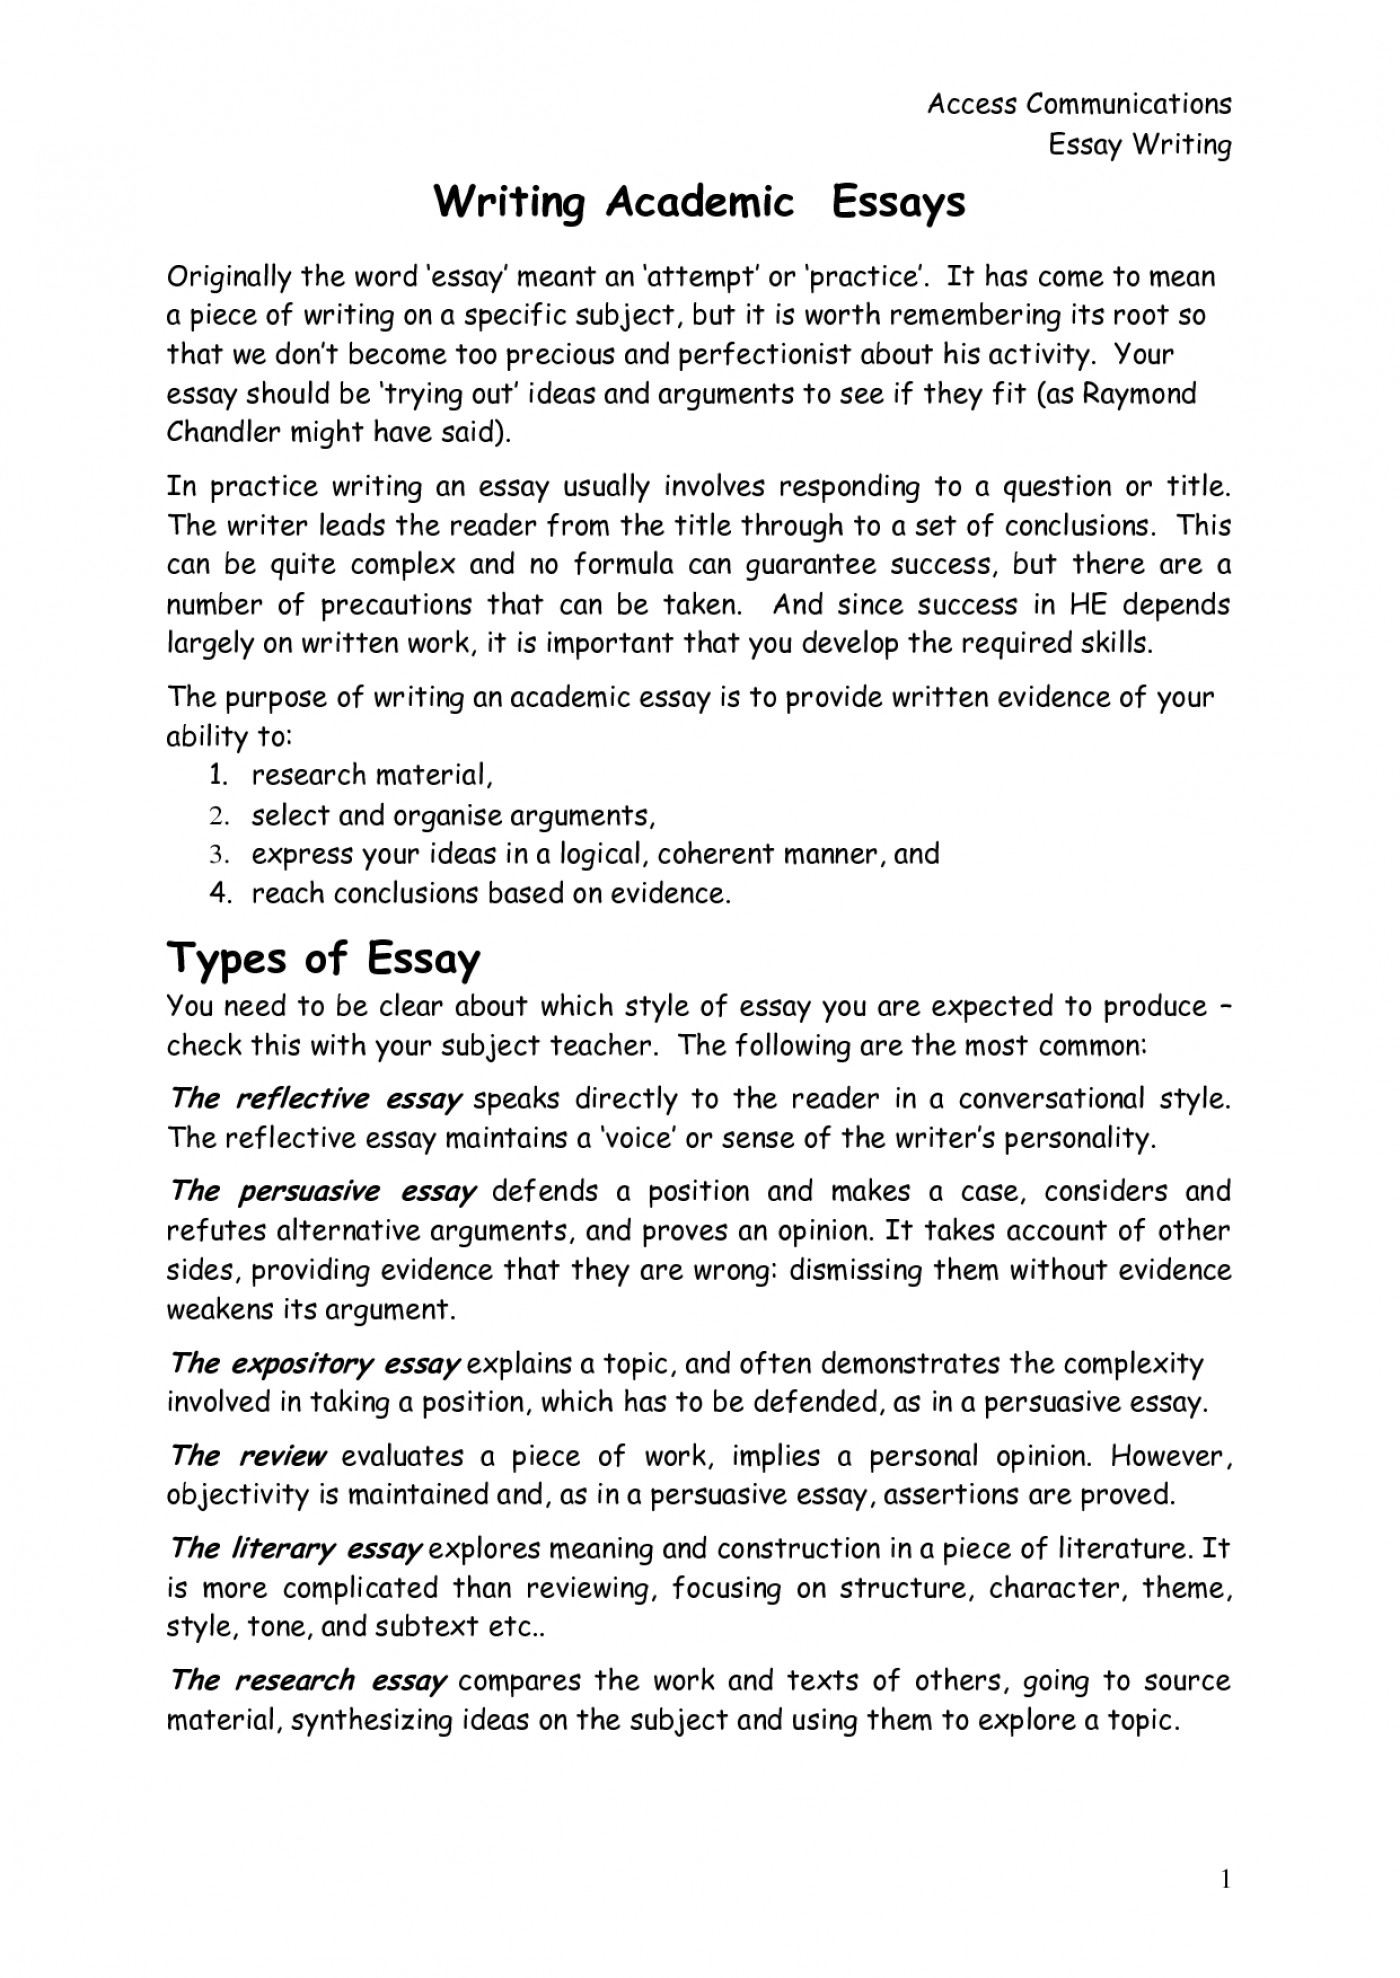 016 Reflective Essay On Academic Writings Beautiful Examples English Pdf For Middle School Writing Class 1400